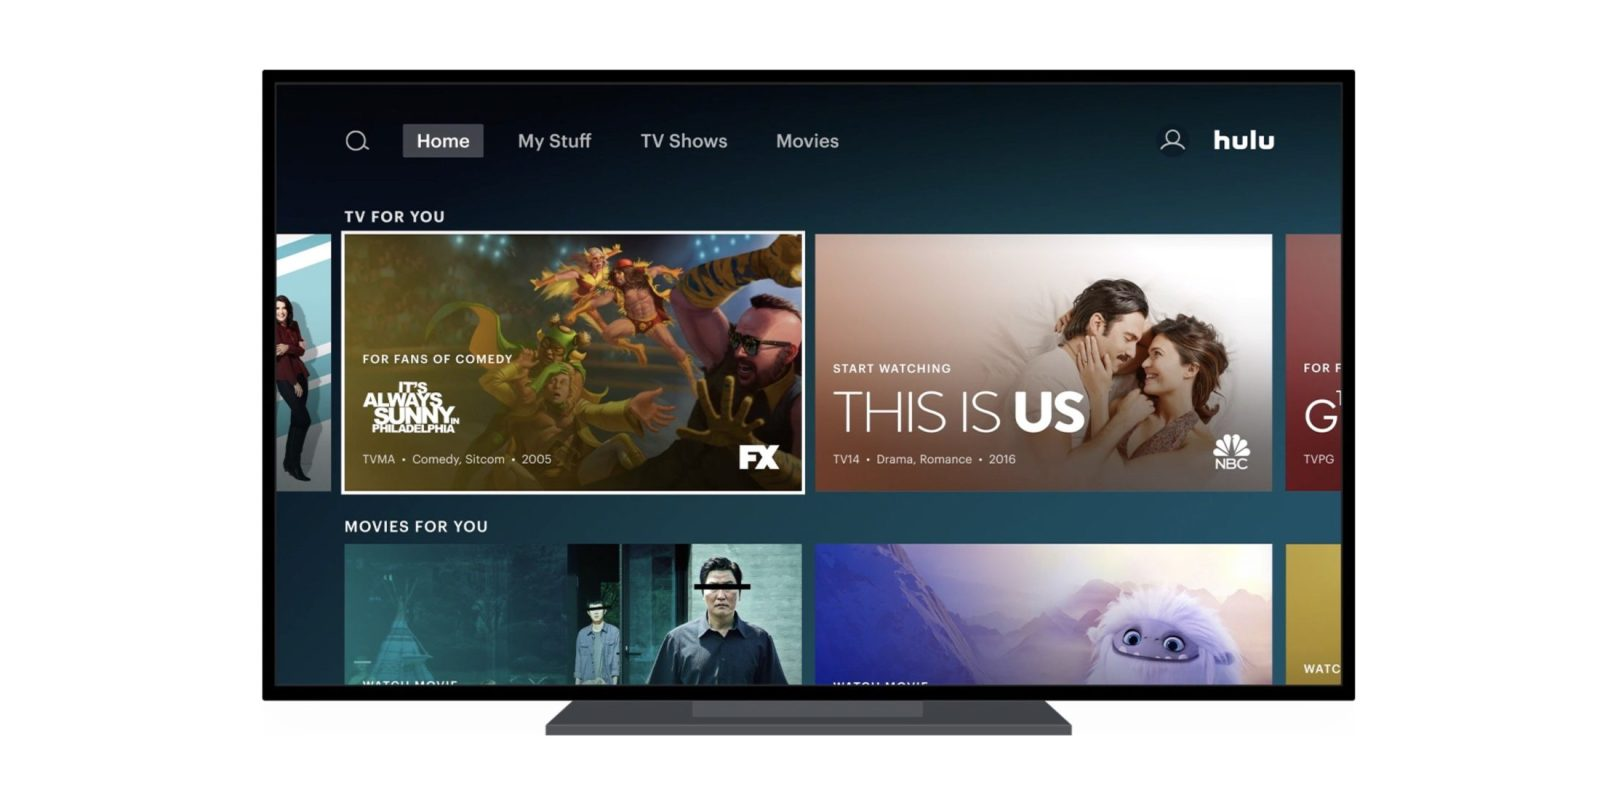 Android TV | Latest news, streamers, TVs, more - 9to5Google